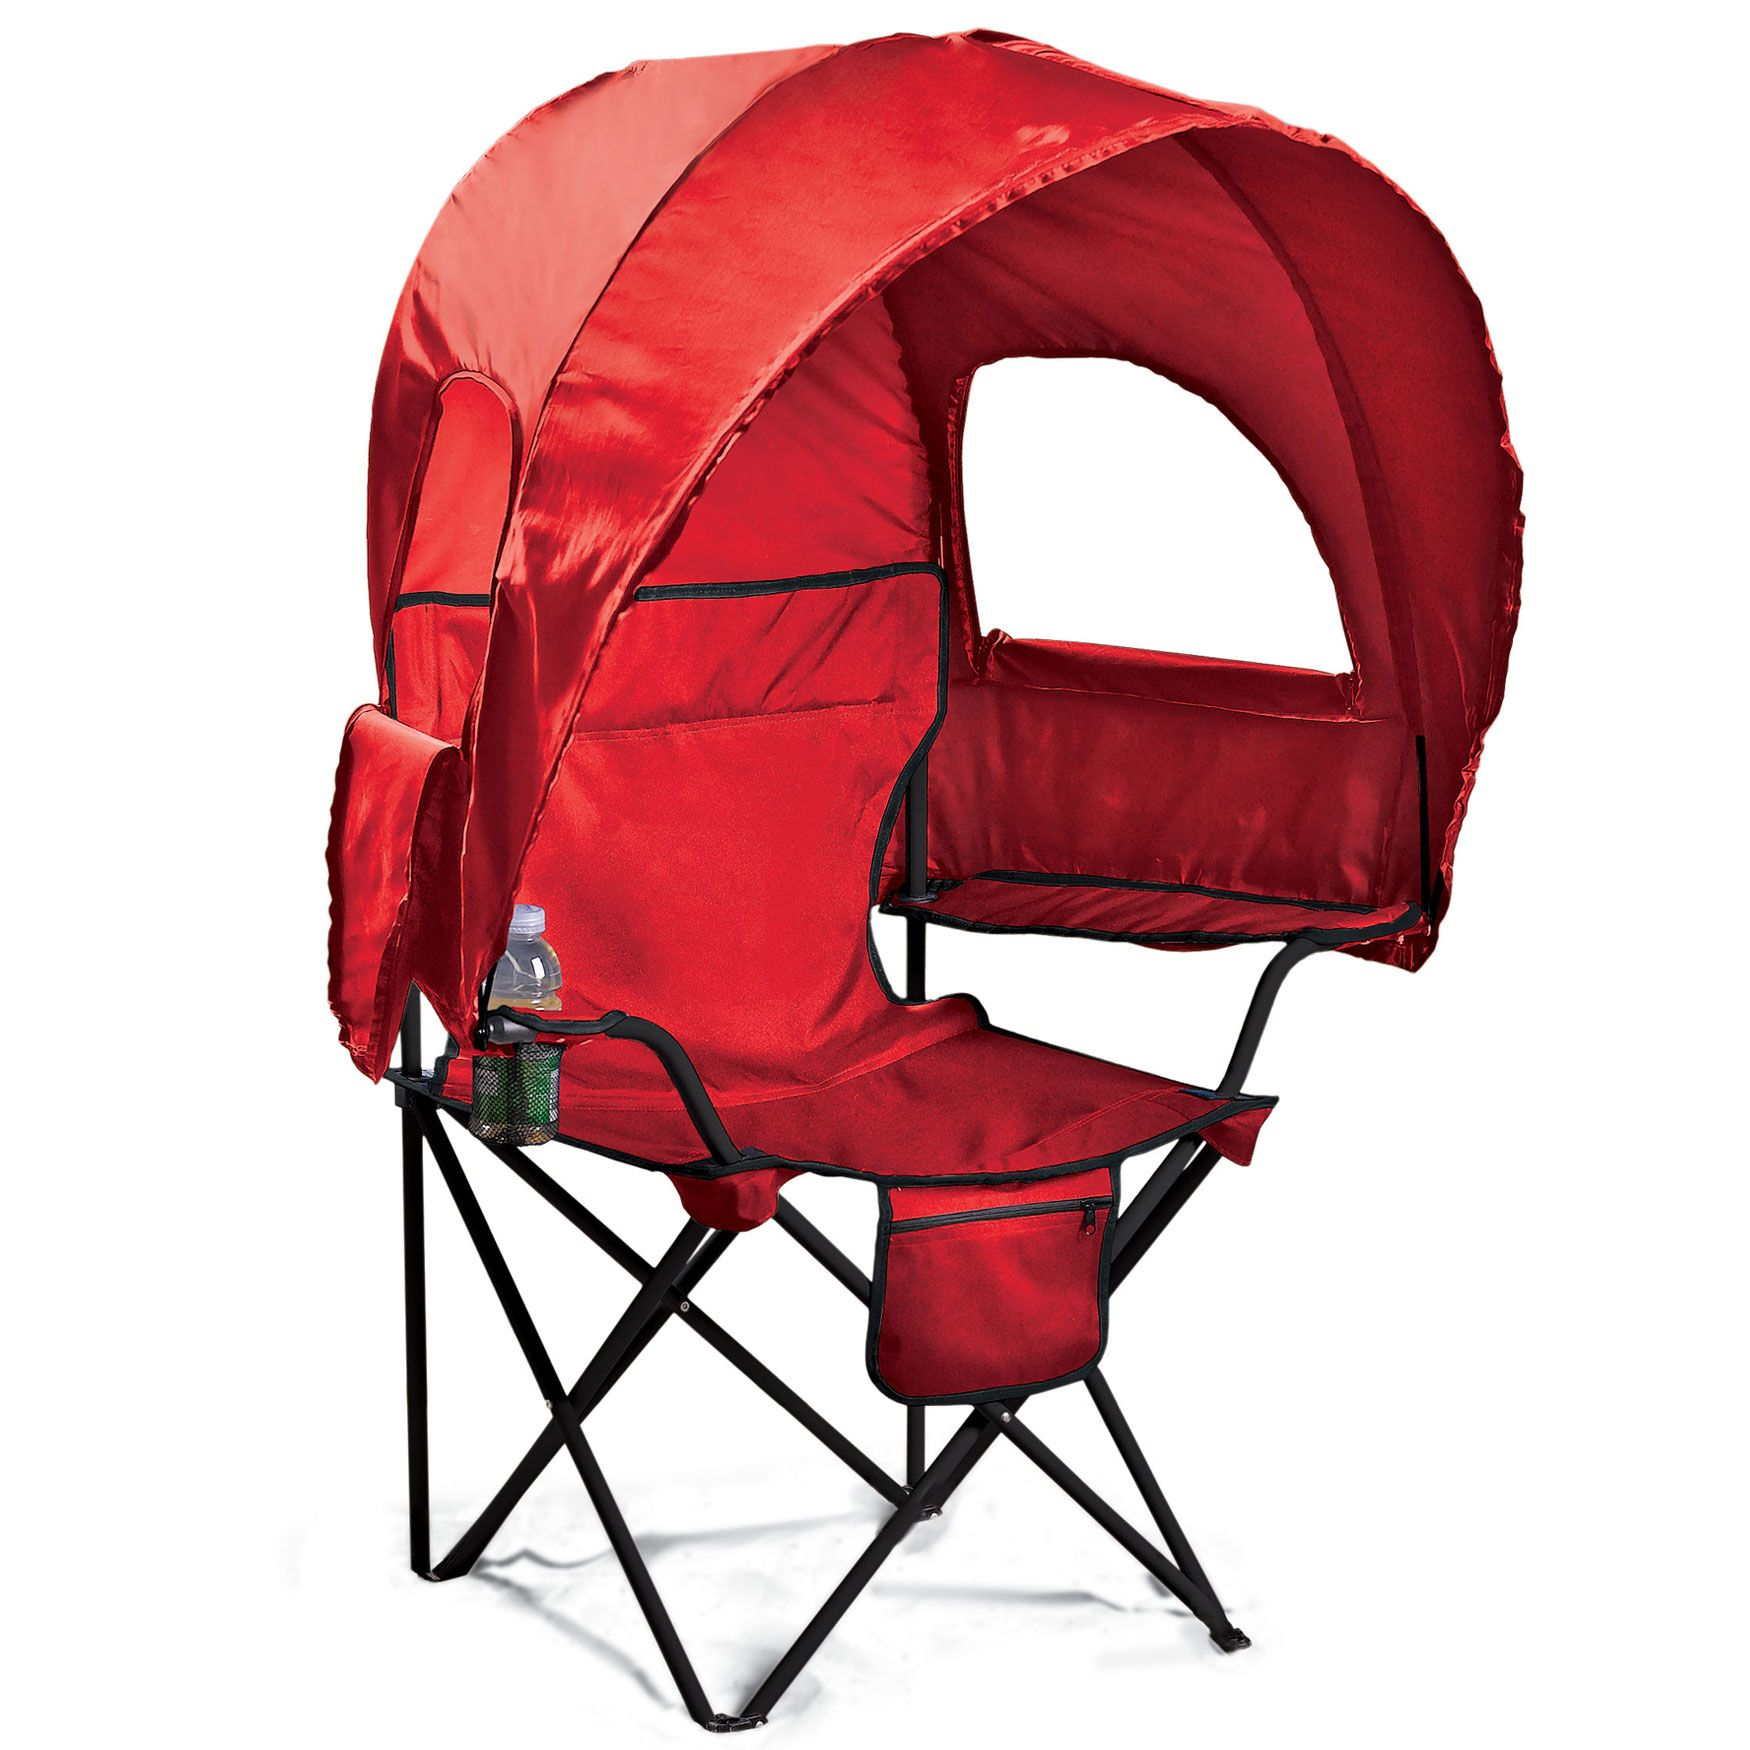 Extra Large Camping Chairs Rocking Chair Cushion Set Camp With Canopy